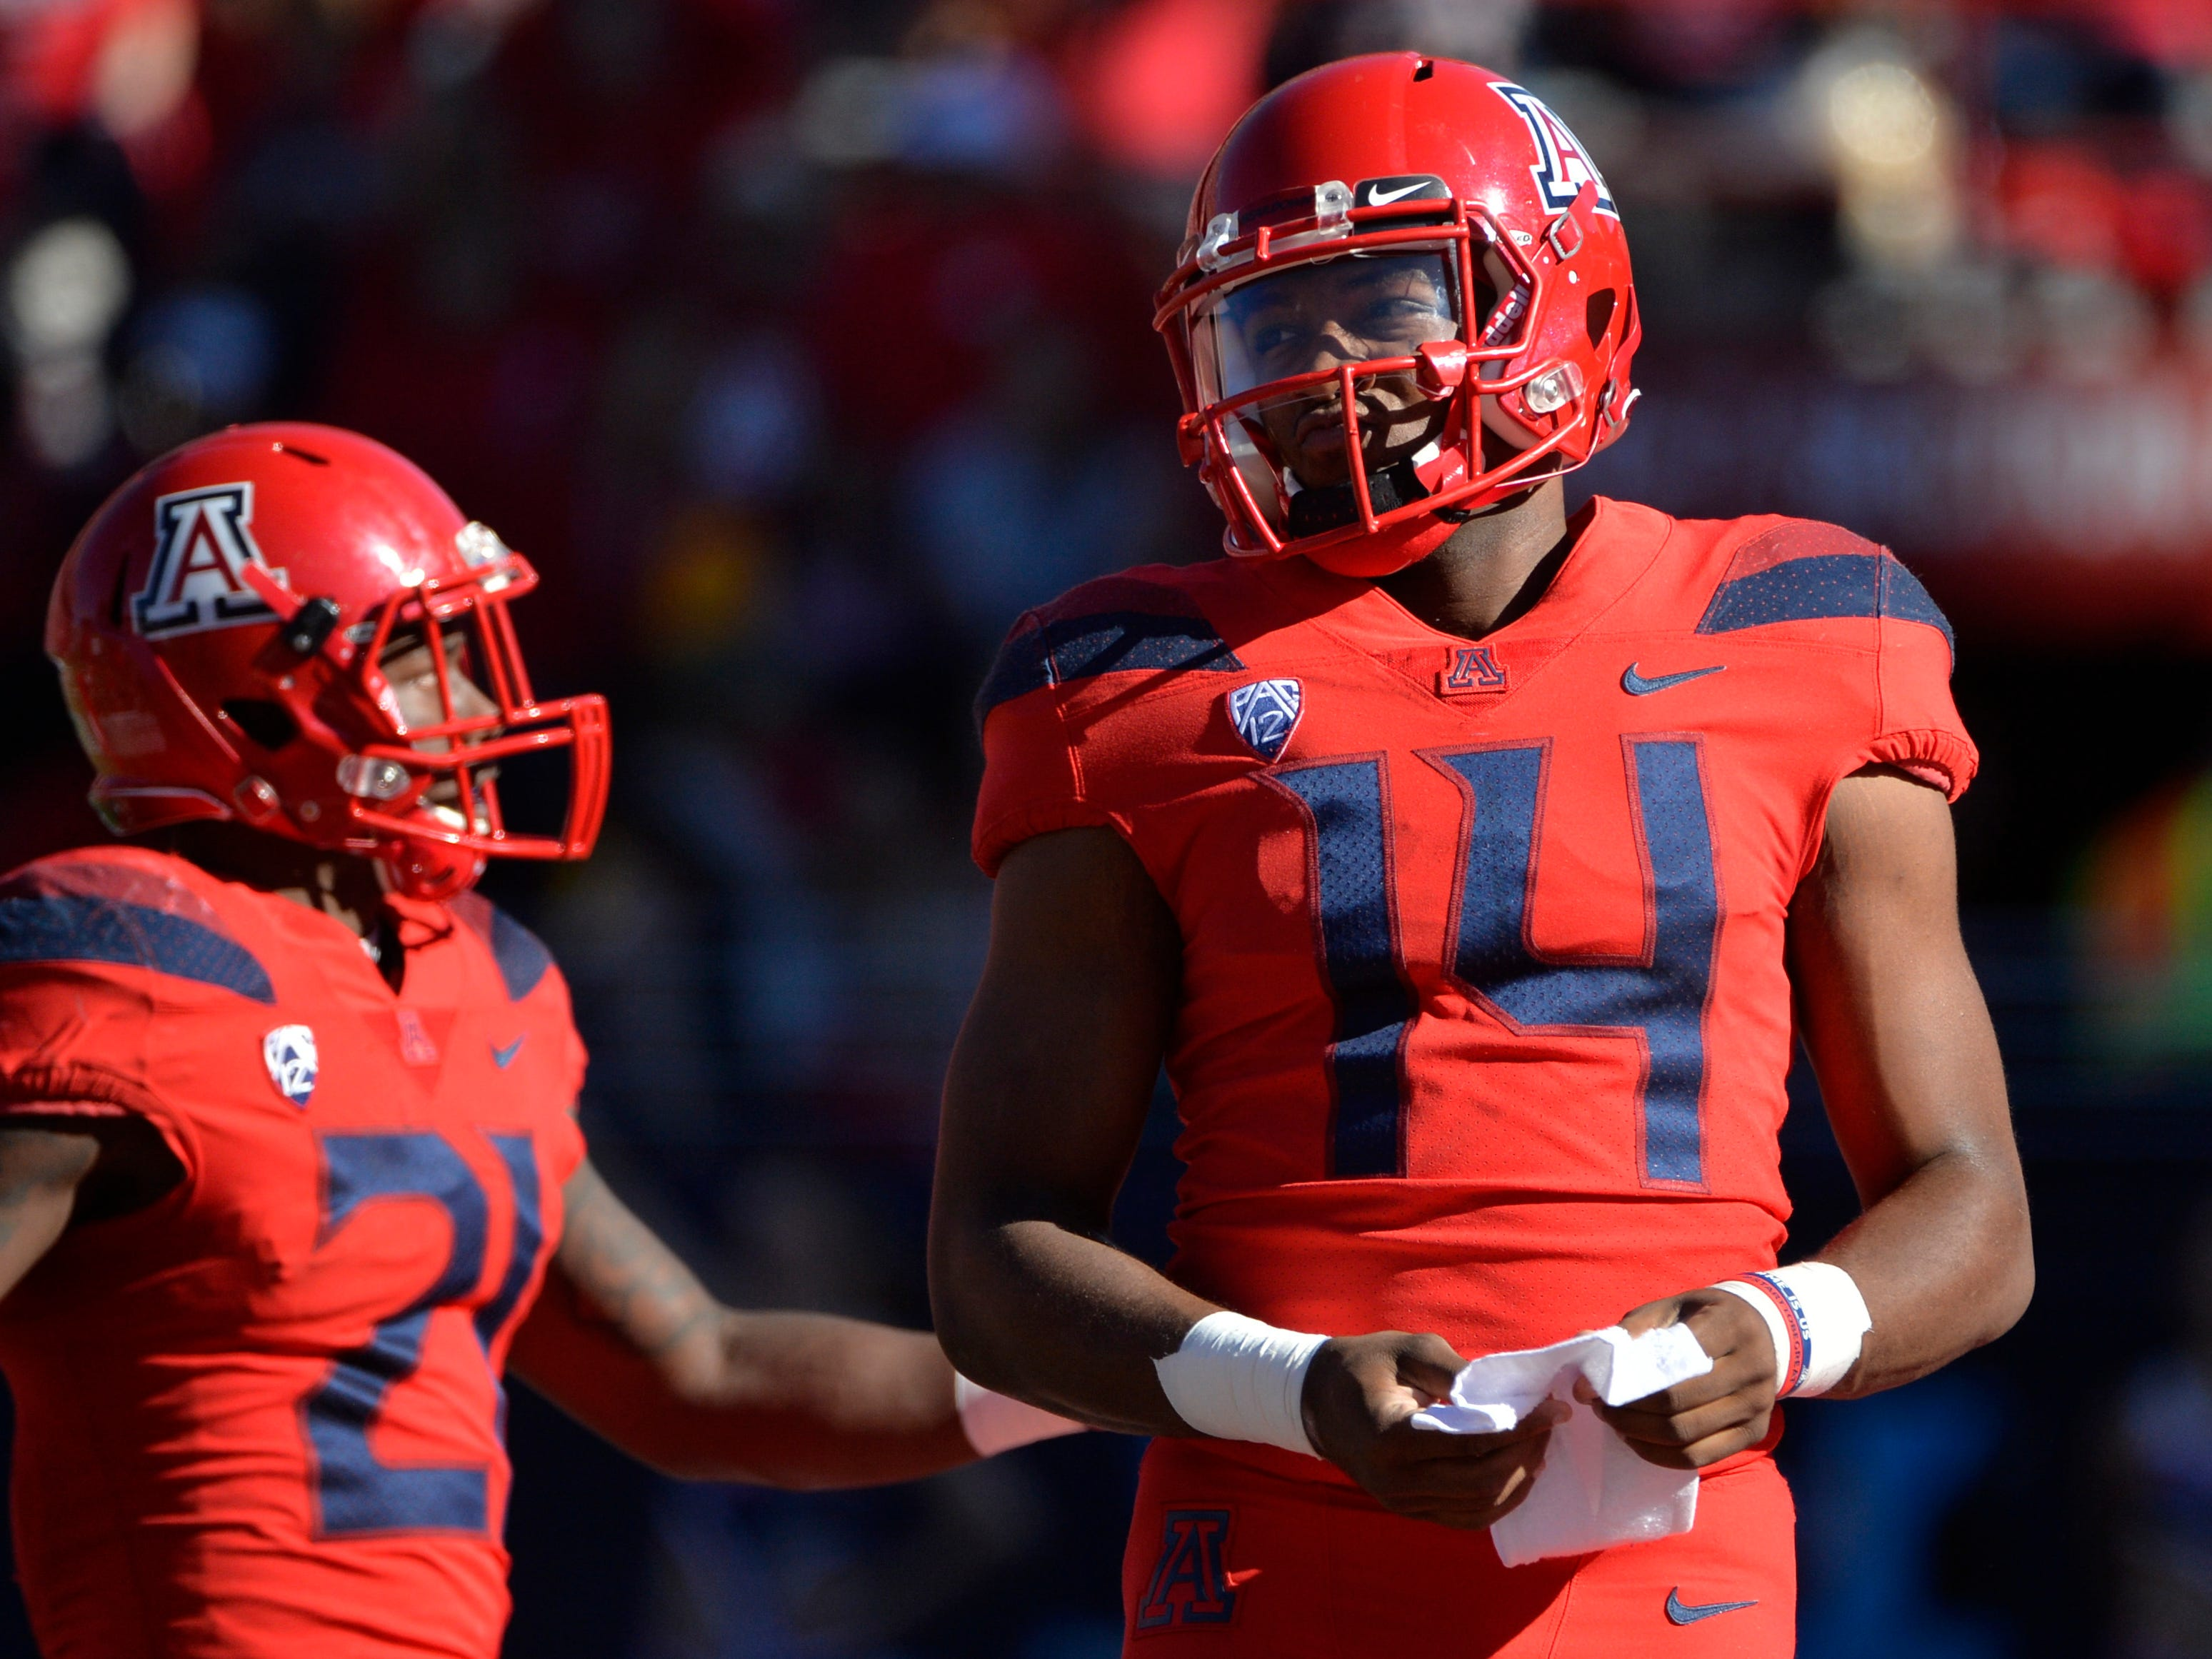 Nov 24, 2018; Tucson, AZ, USA; Arizona Wildcats quarterback Khalil Tate (14) and running back J.J. Taylor (21) line up before a play against the Arizona State Sun Devils at Arizona Stadium. Mandatory Credit: Casey Sapio-USA TODAY Sports